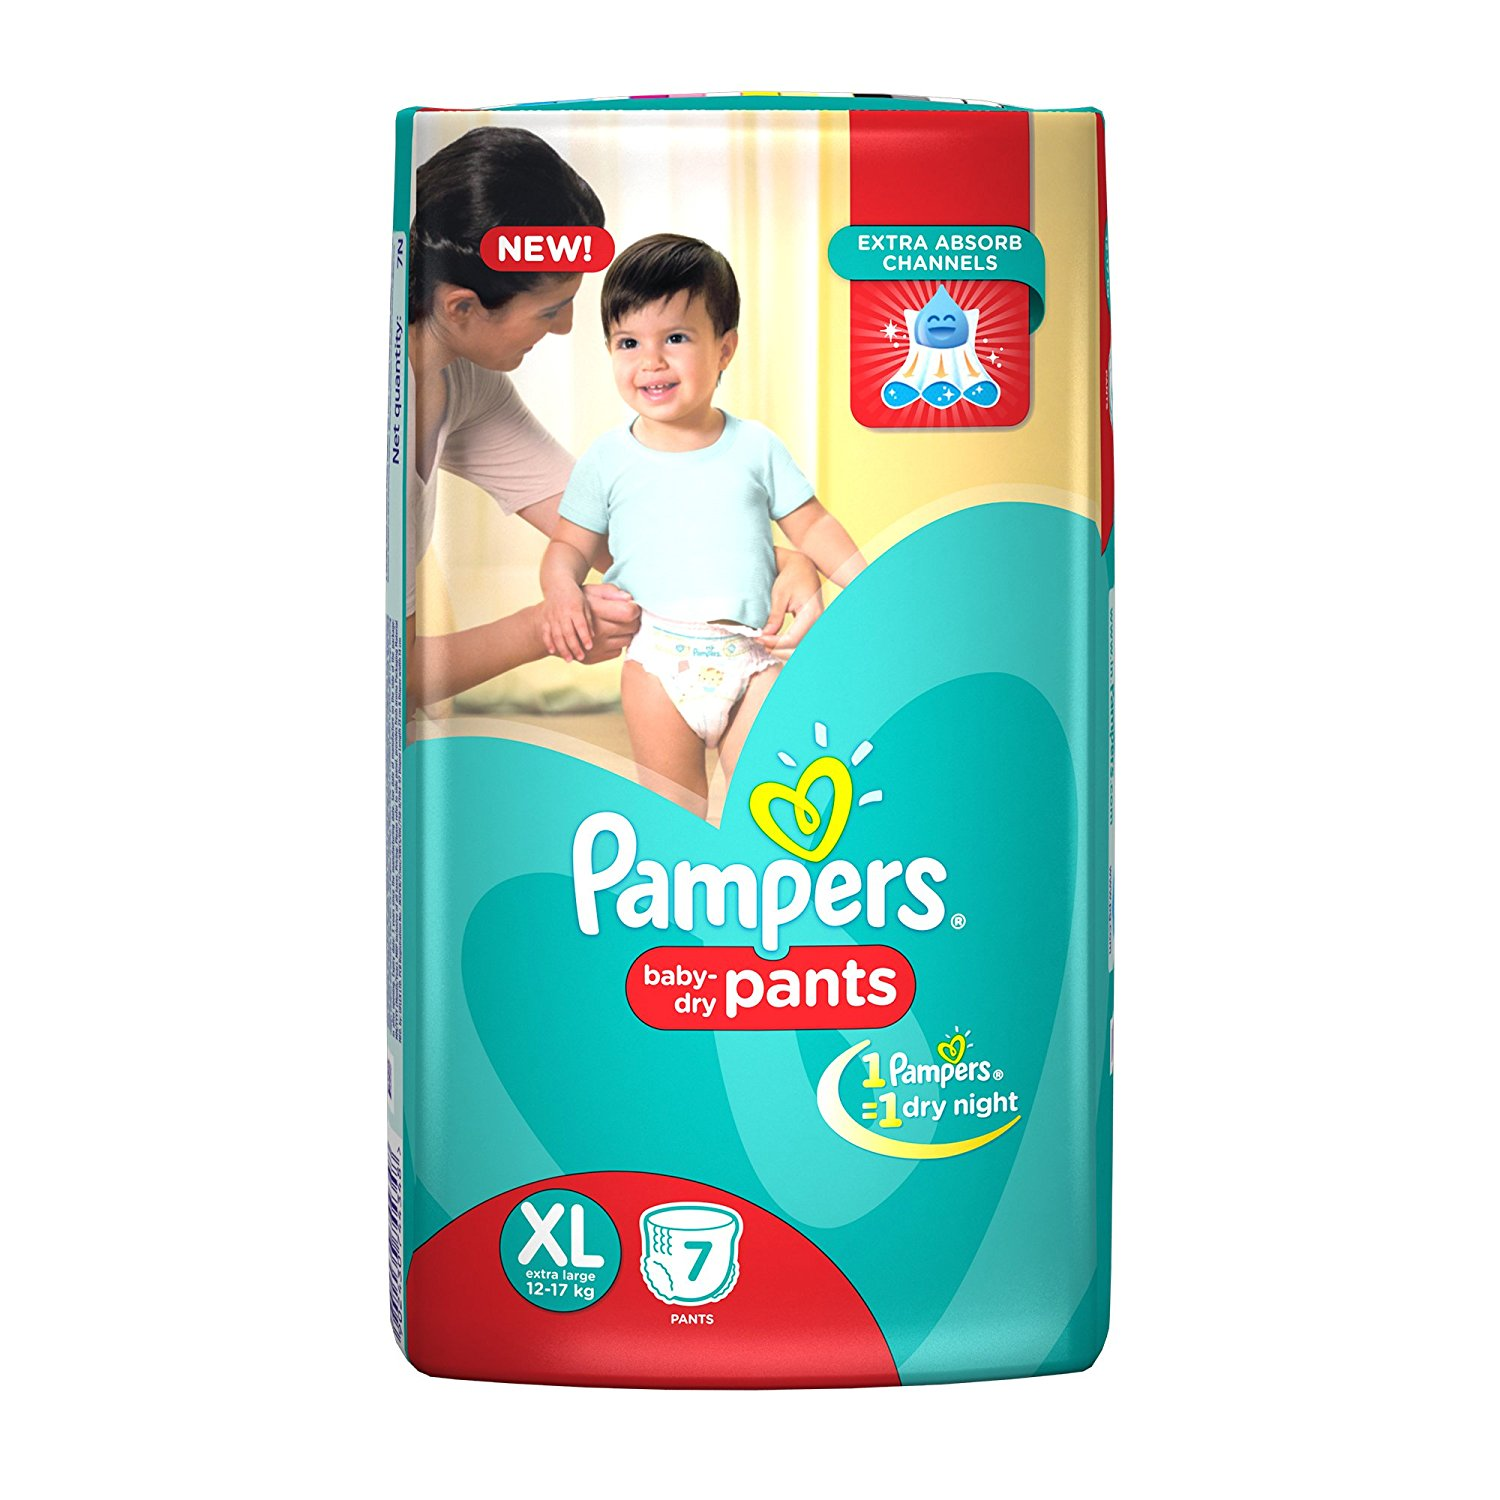 Pampers Pants Extra Large Size Diapers(7 Count)